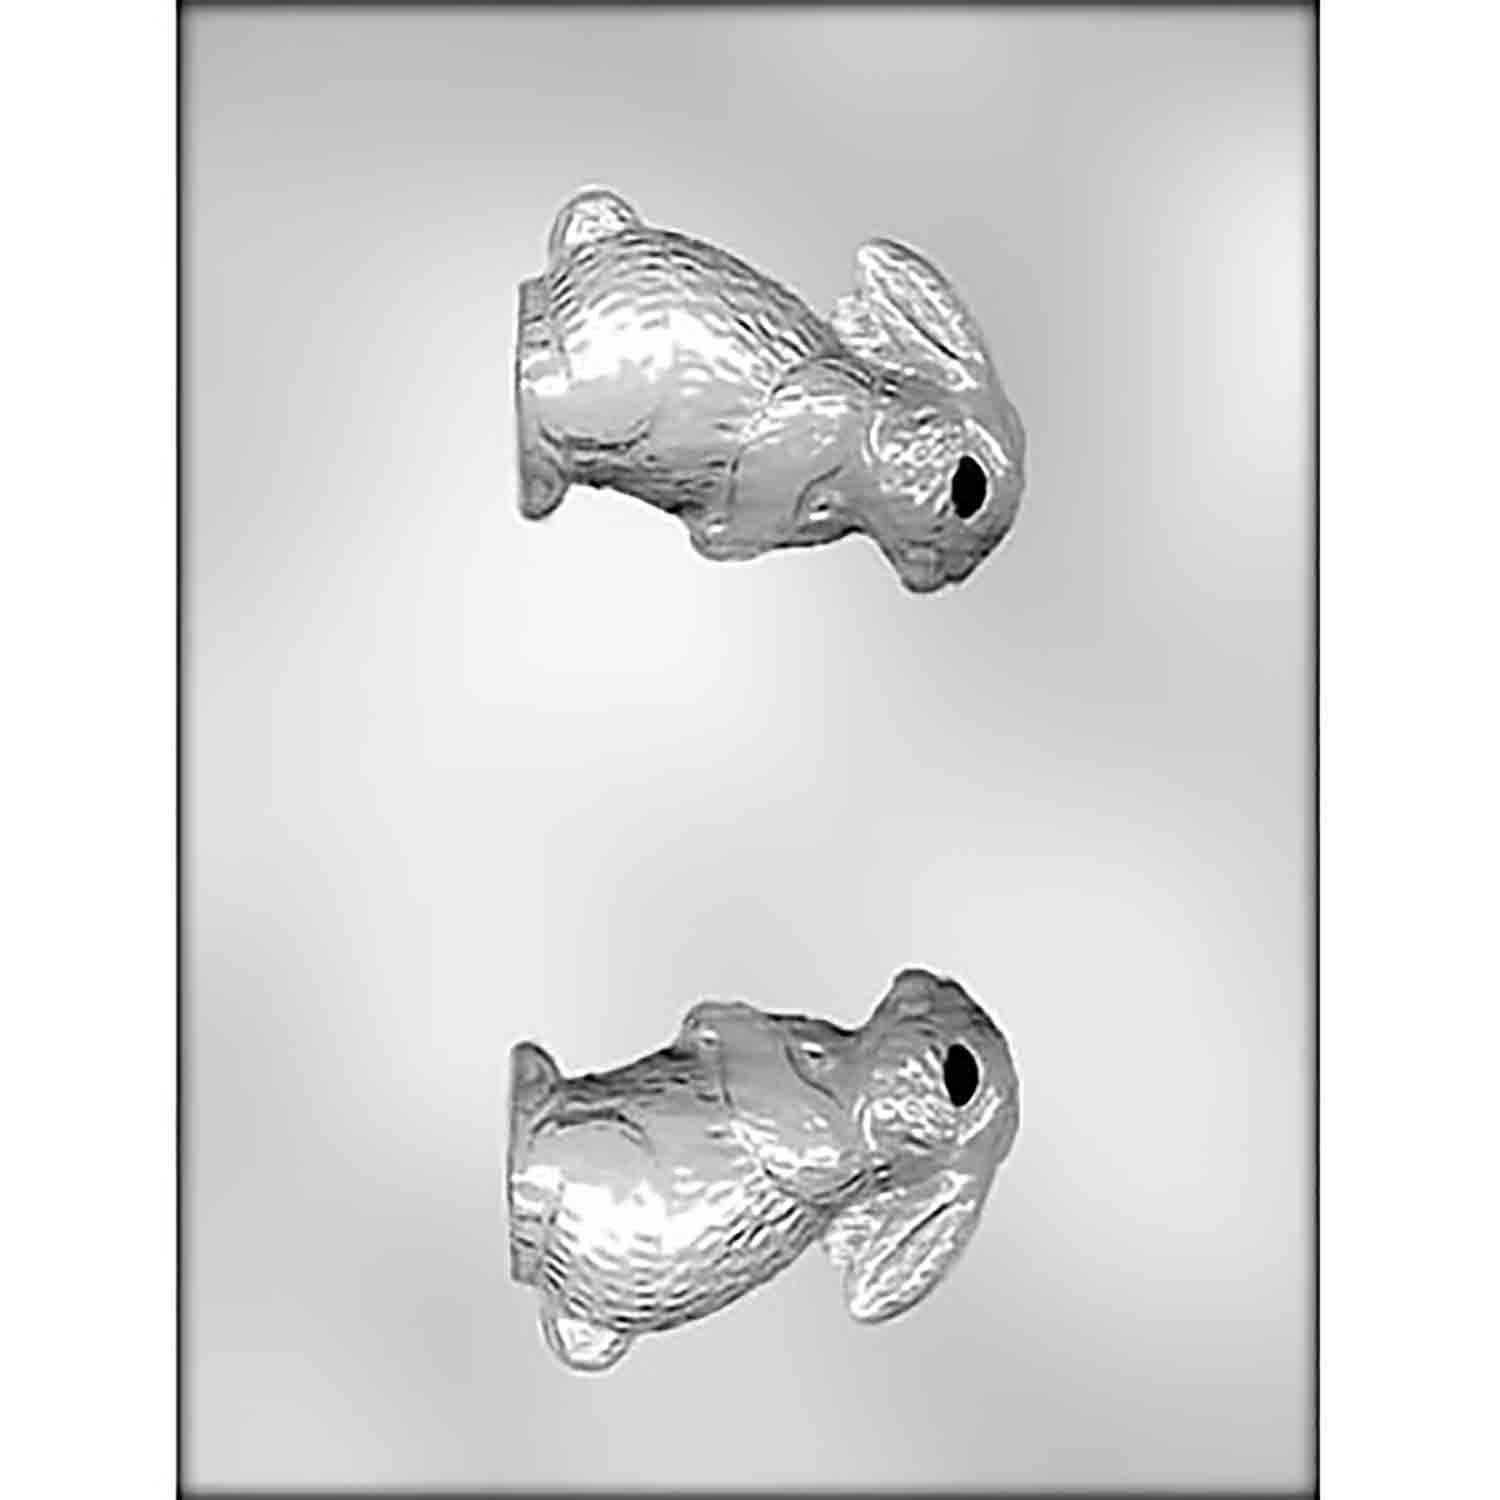 3D Upright Bunny Chocolate Candy Mold